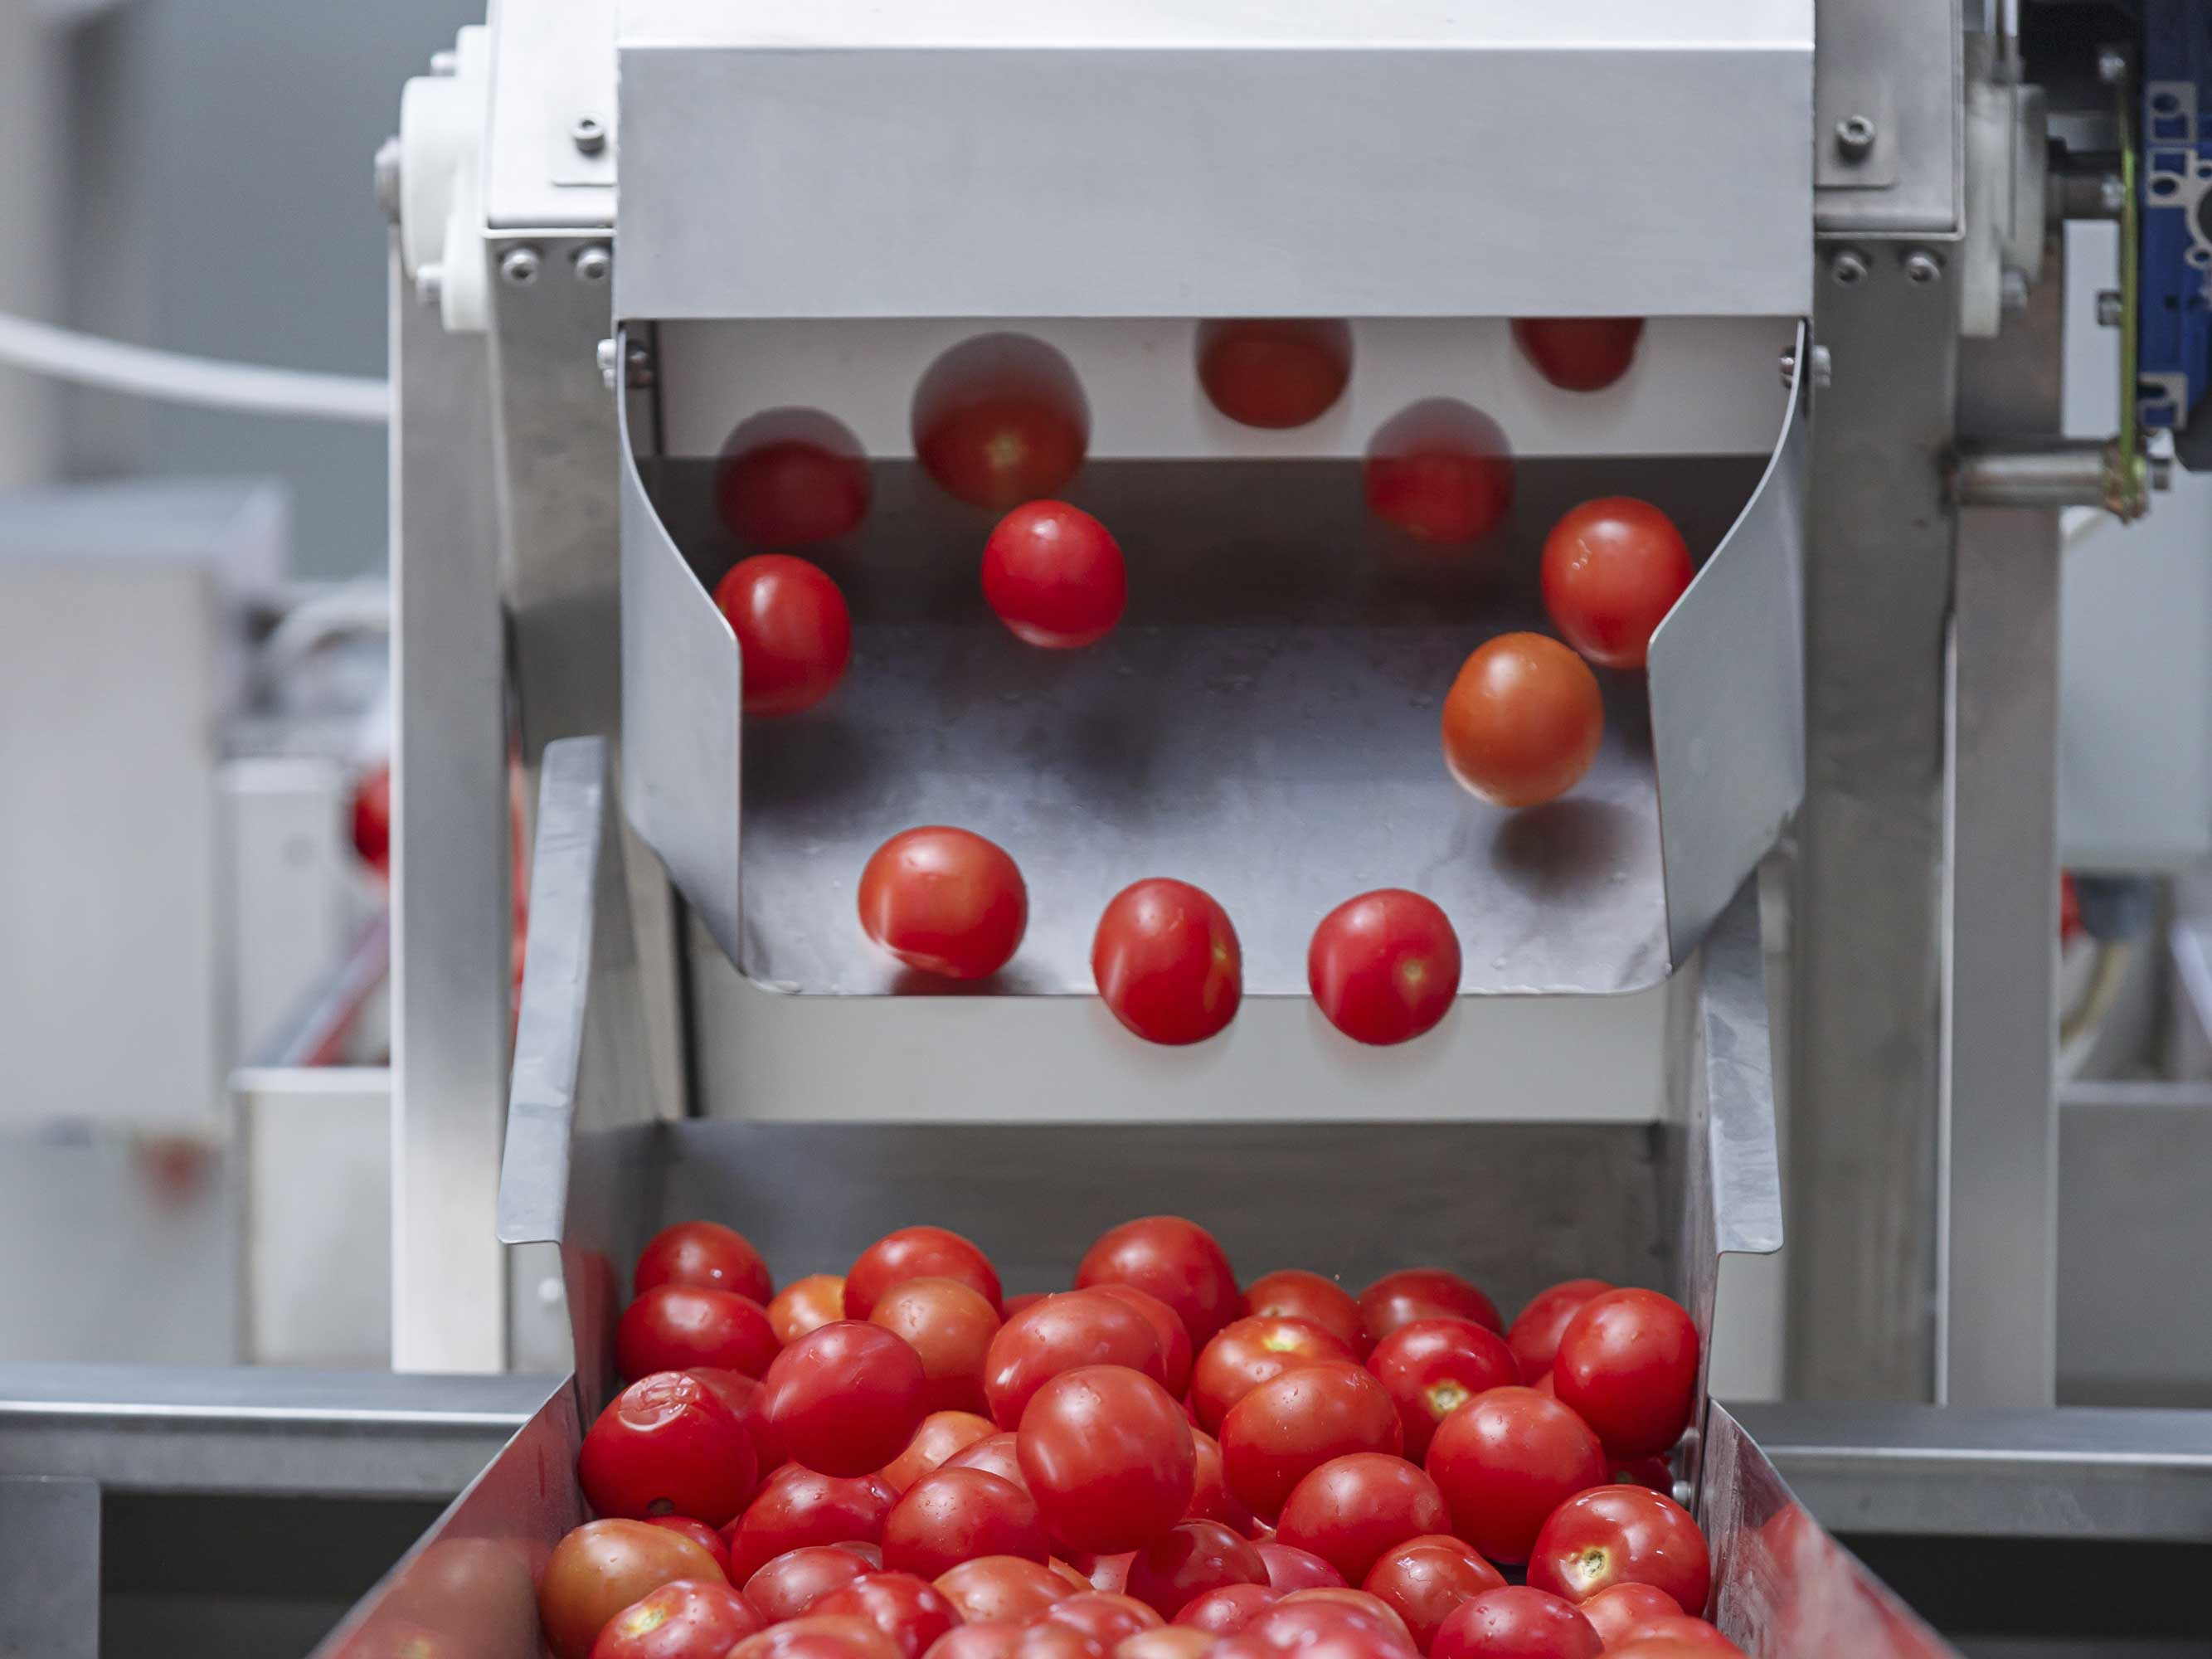 Food processing - tomato calibration machine